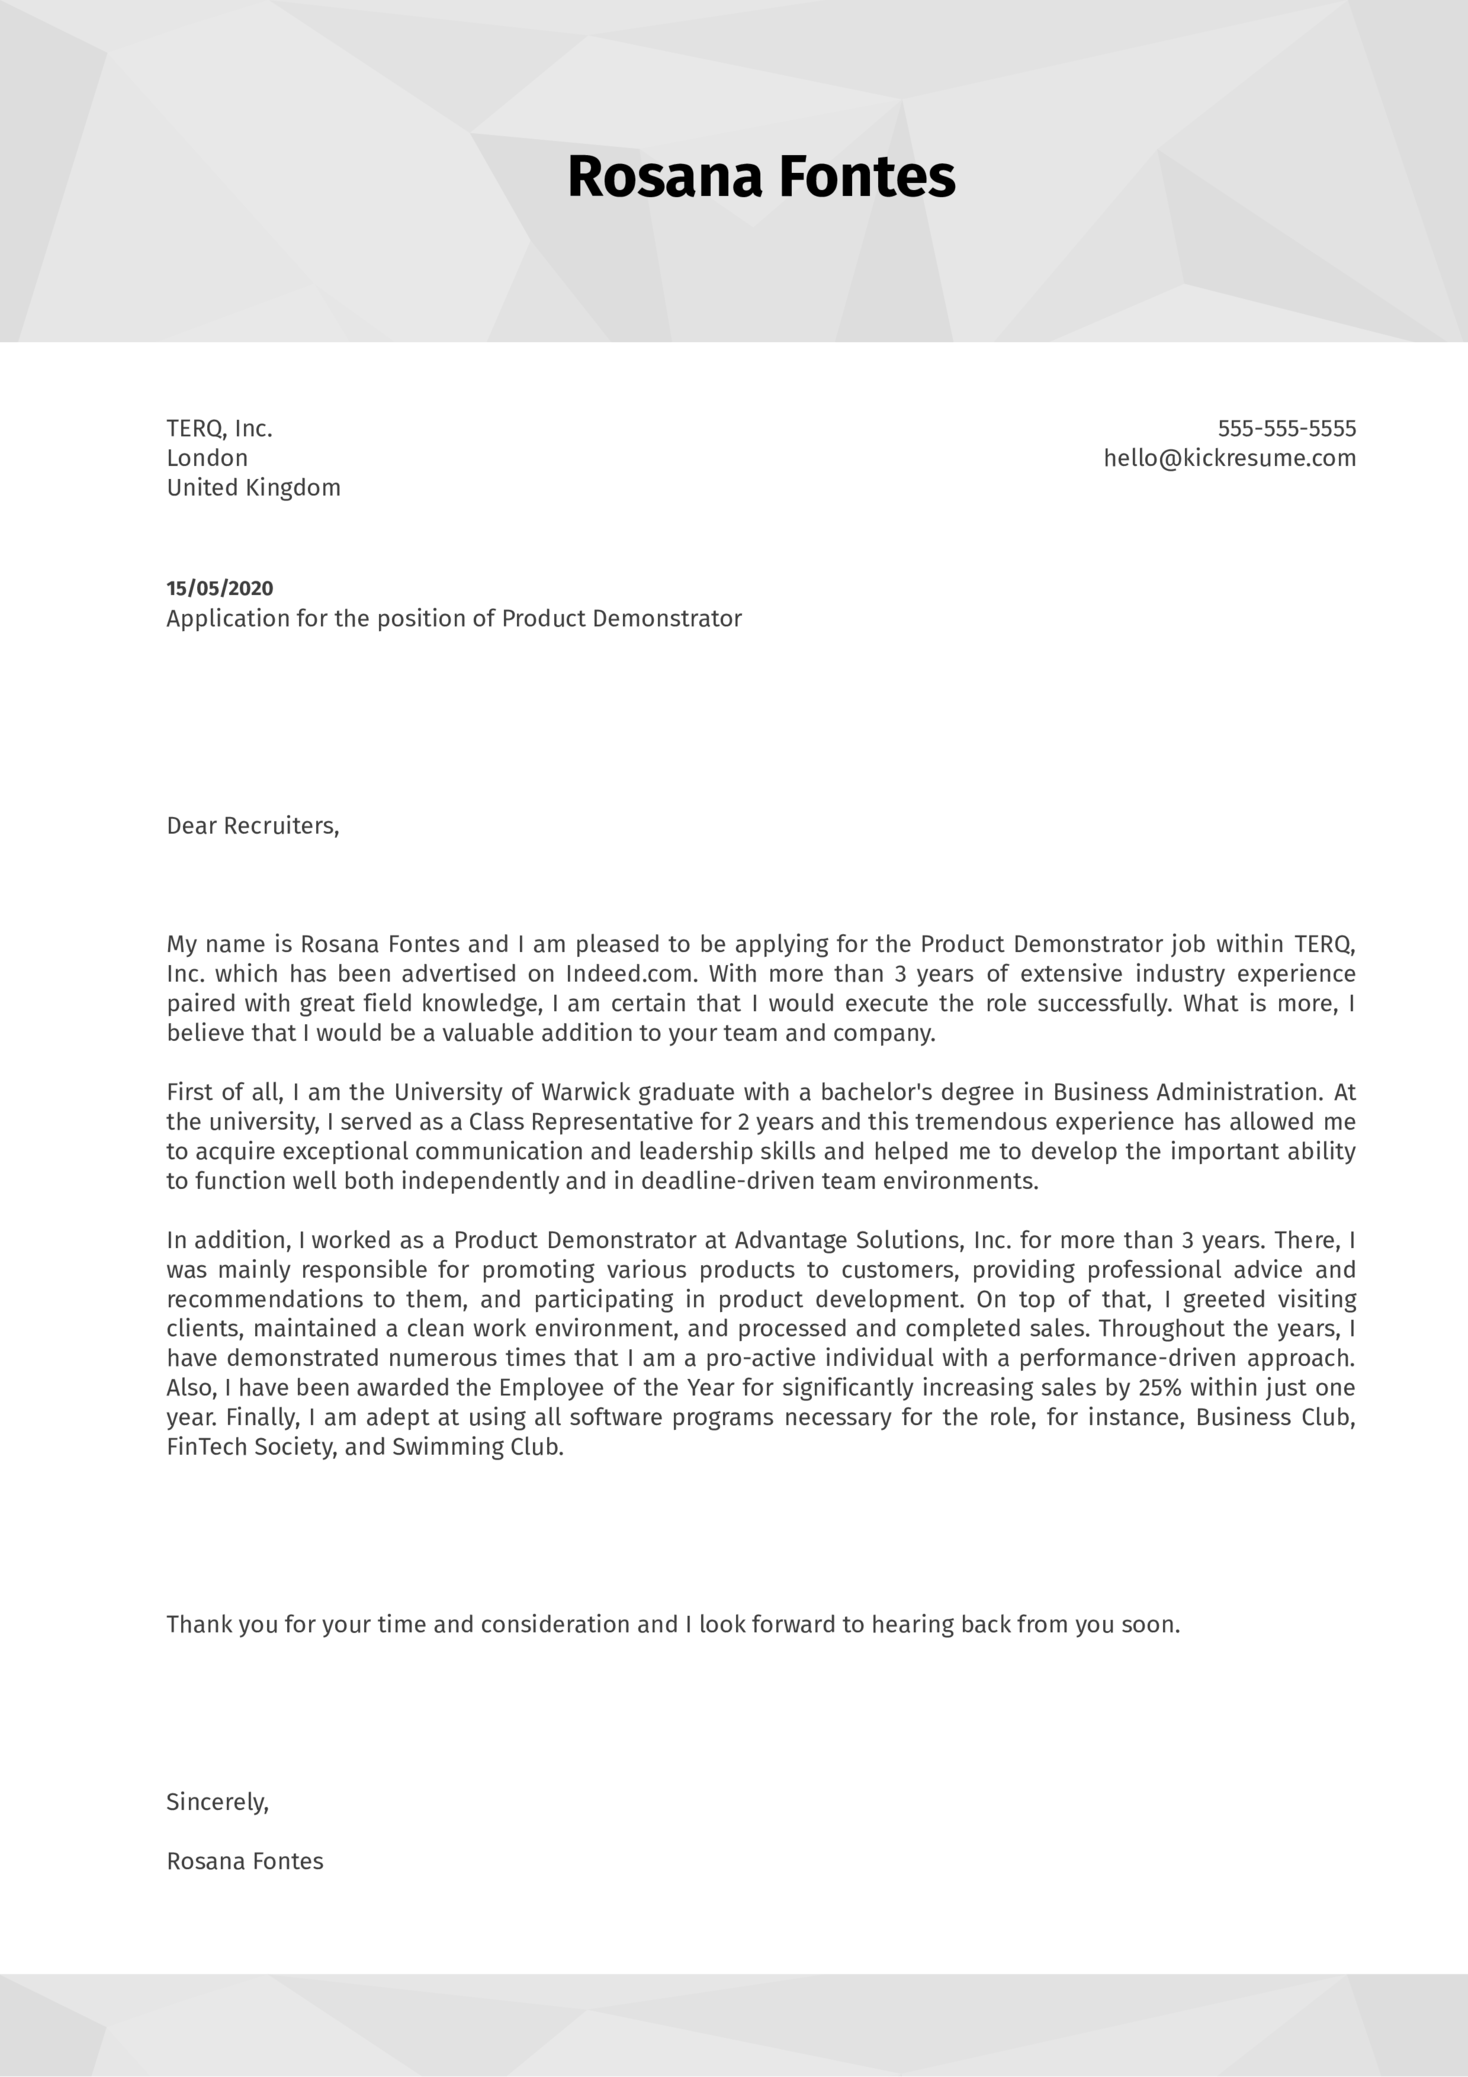 Product Demonstrator Cover Letter Example